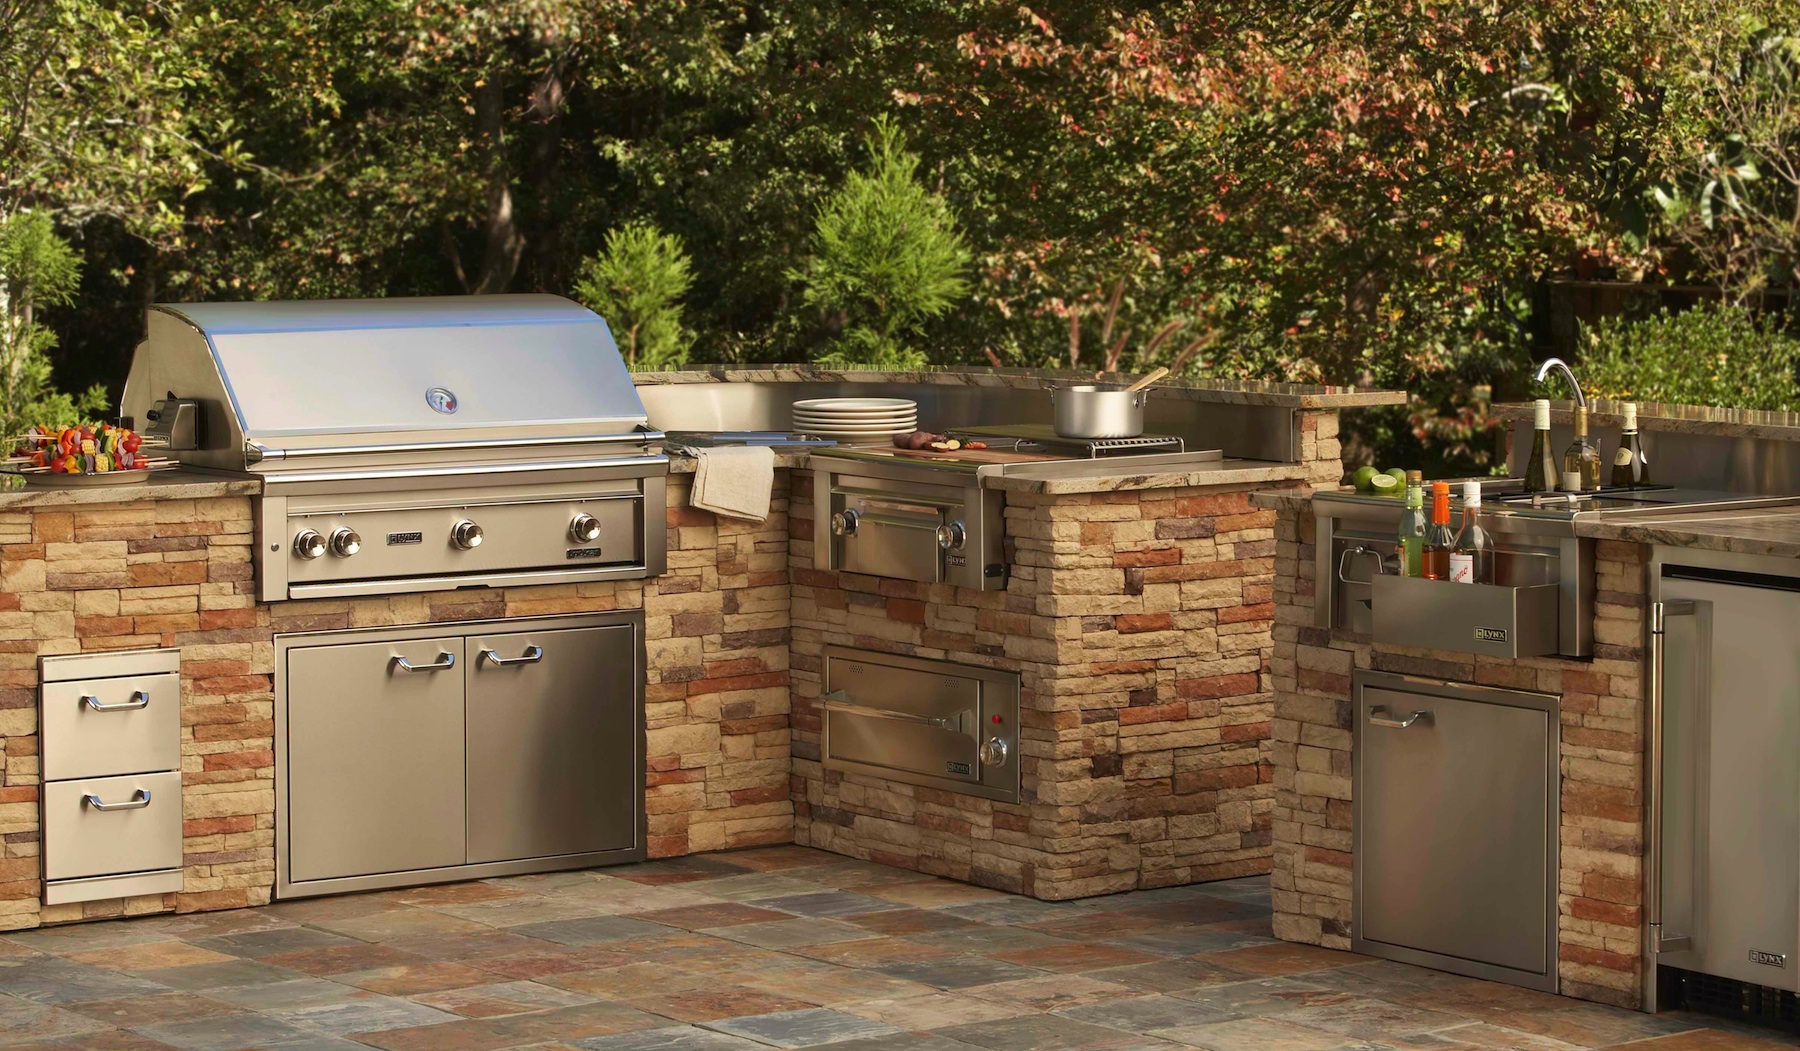 Las Vegas Nevada S 1 Outdoor Kitchen Design - Barbecue Grill Las Vegas